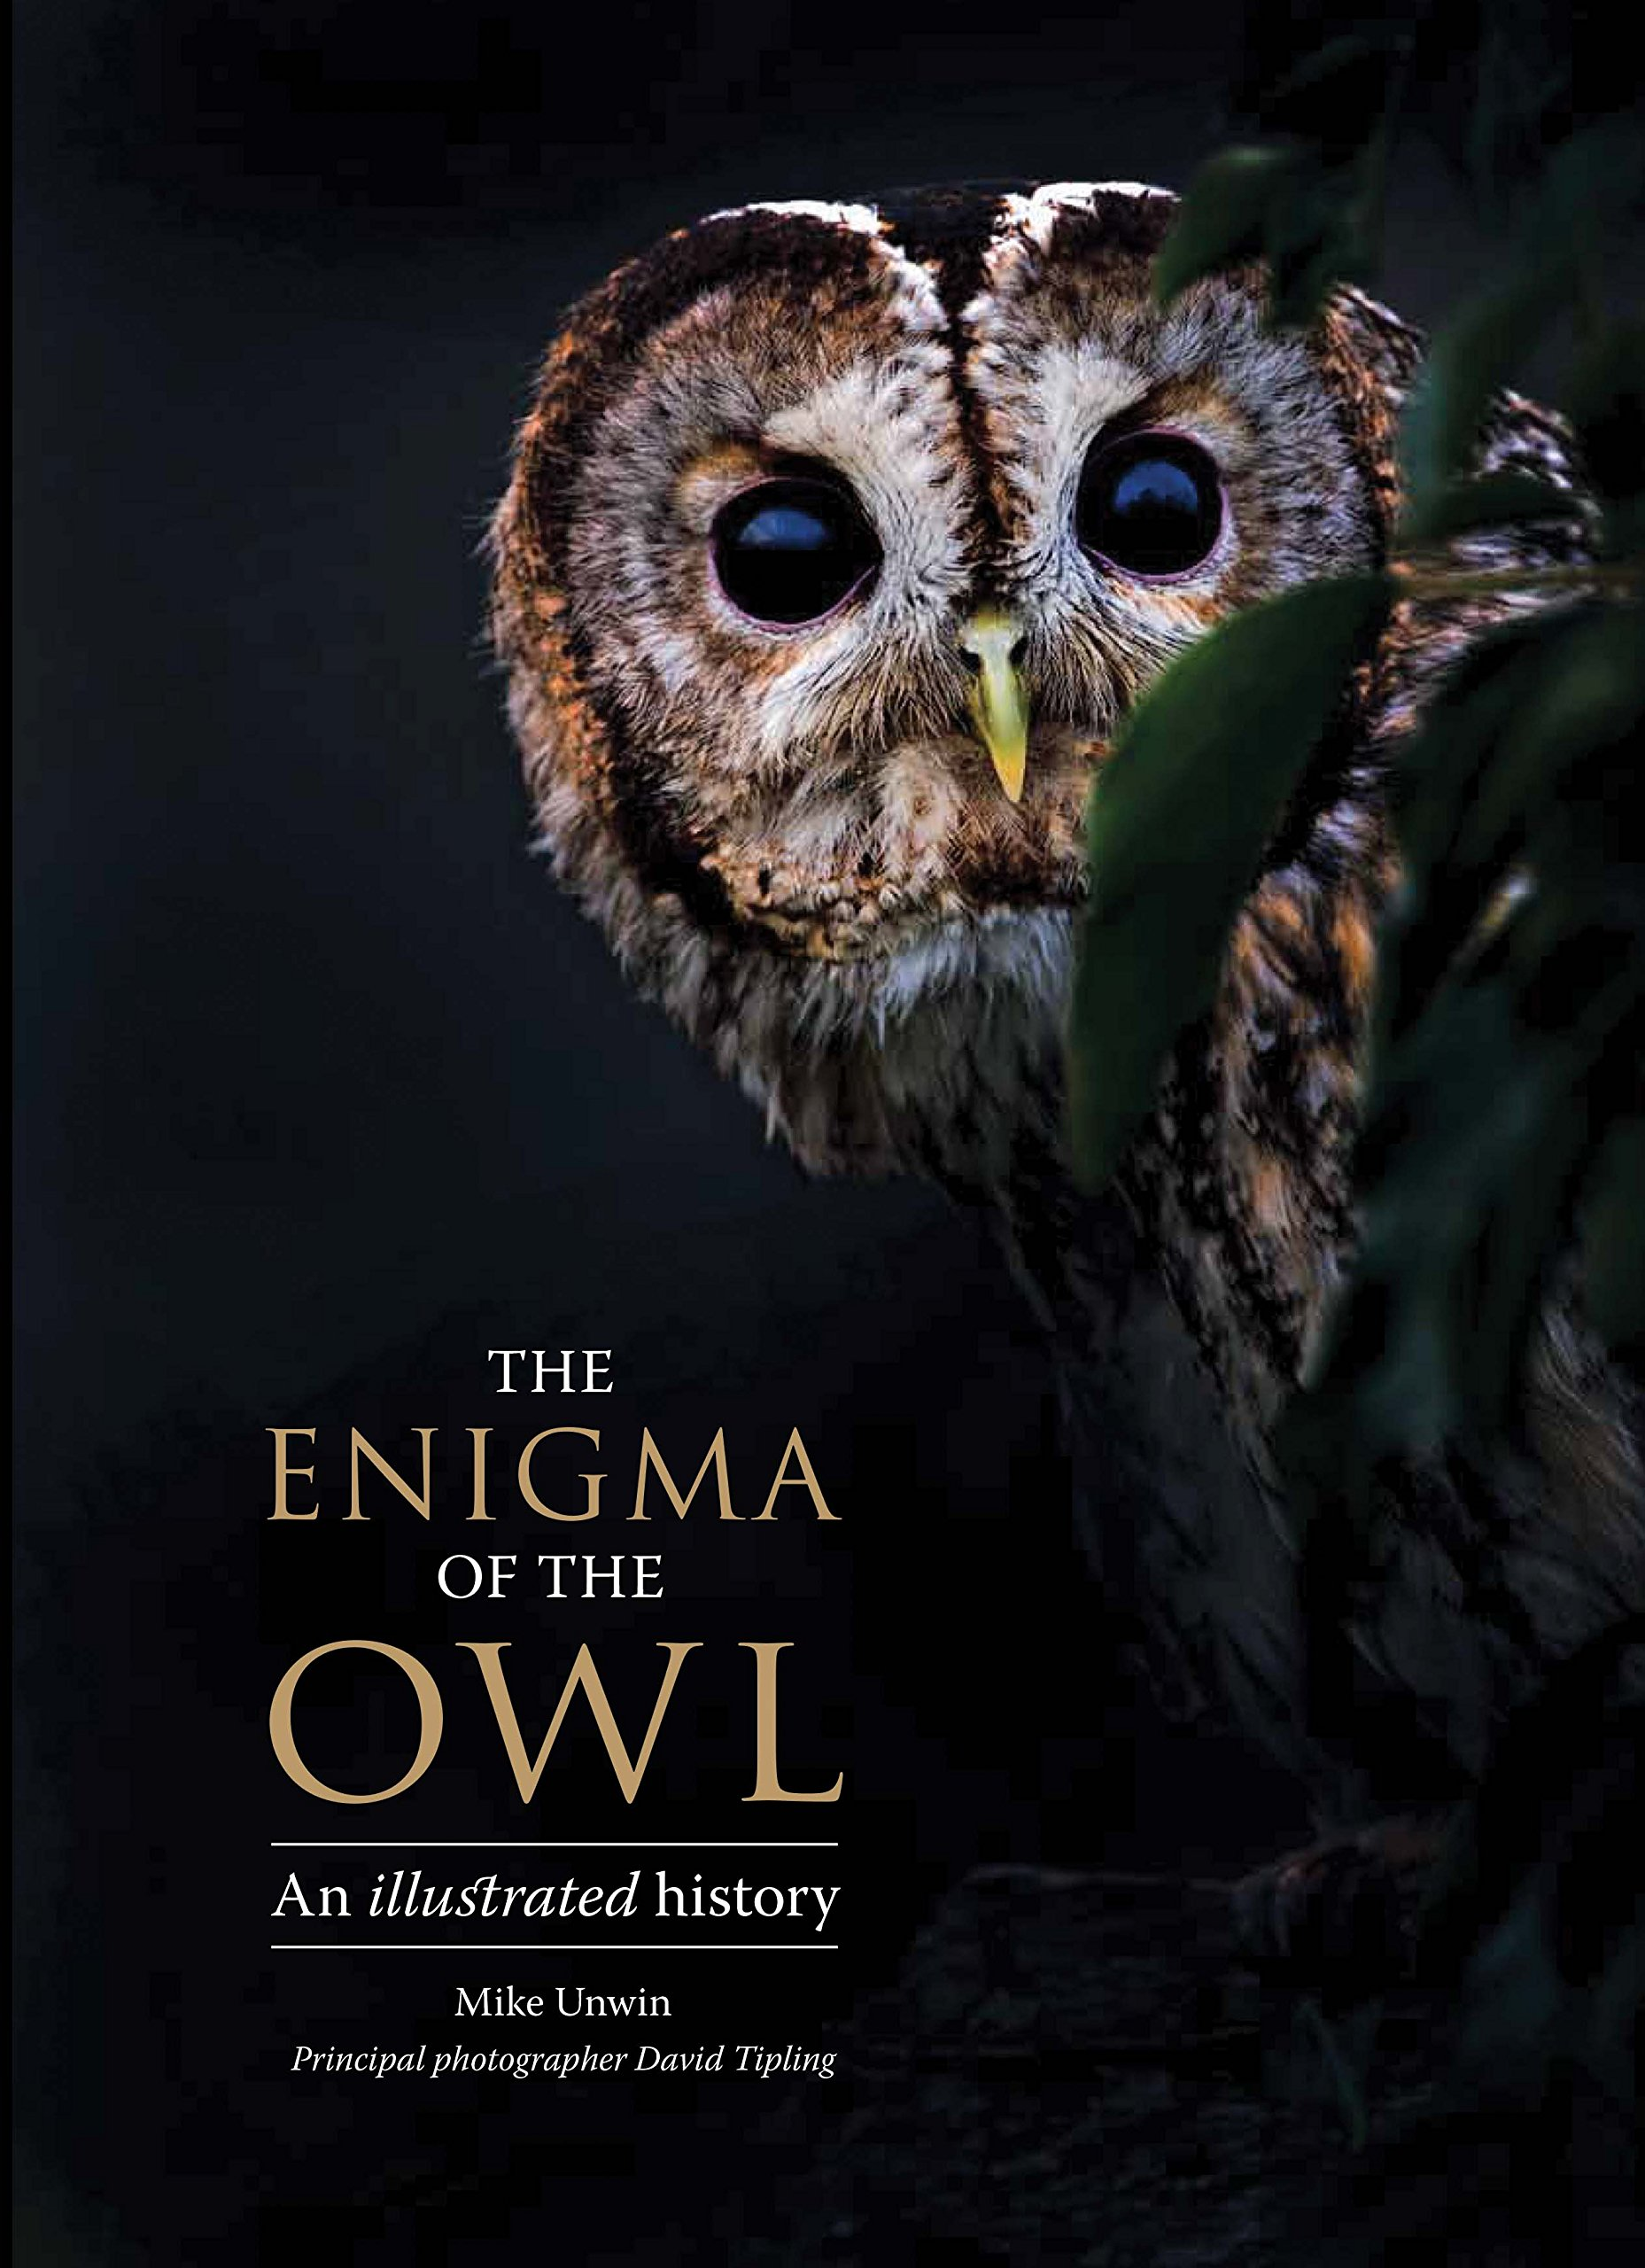 The Enigma of the Owl: An Illustrated Natural History